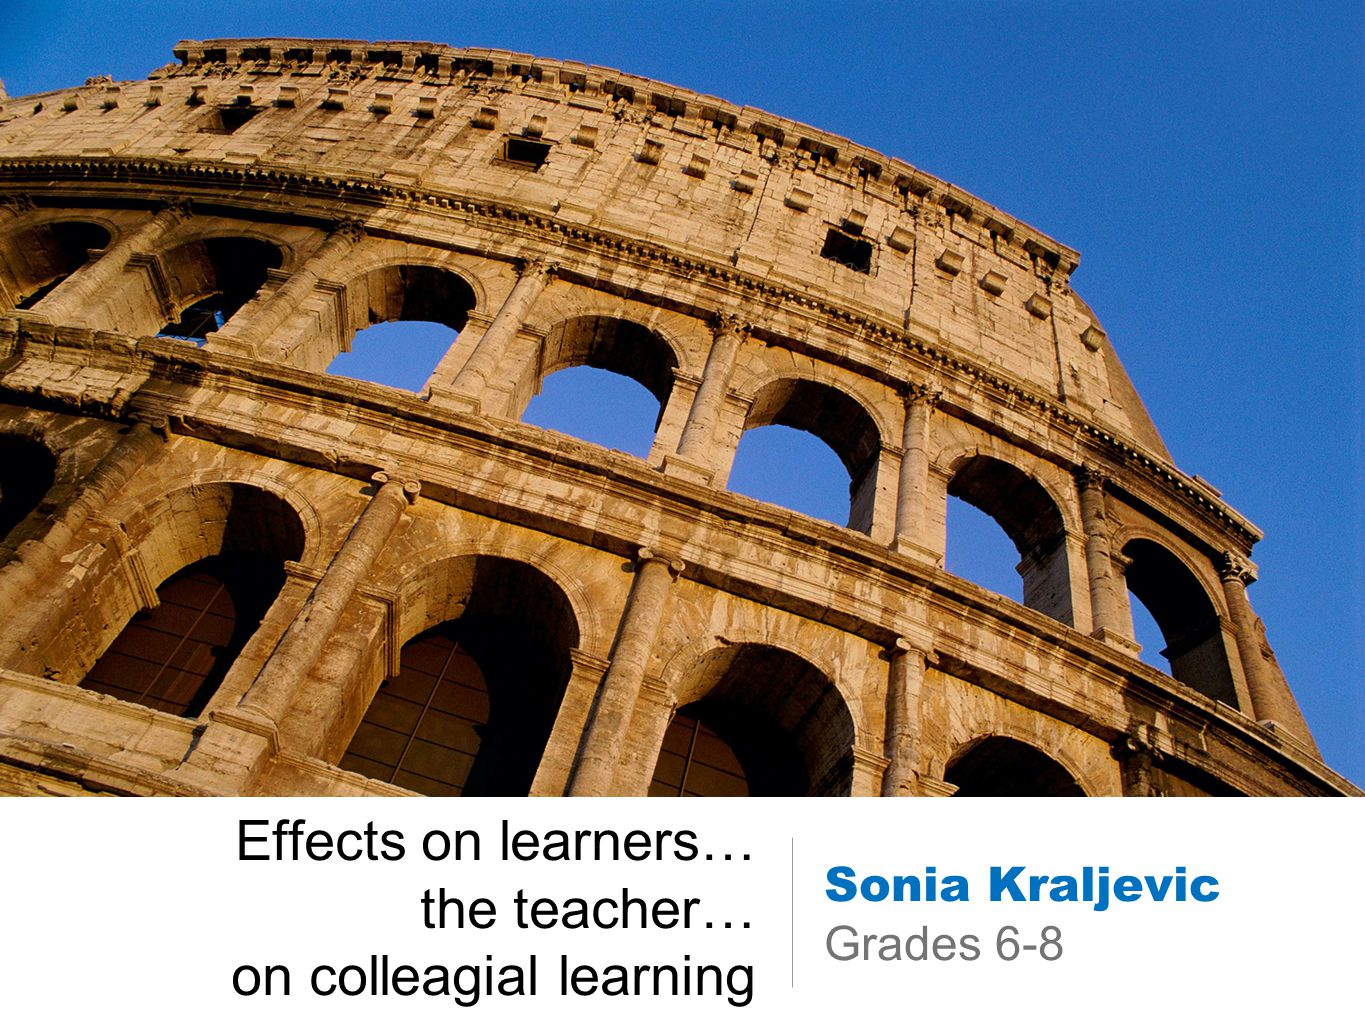 Effects on learners… the teacher… on colleagial learning Sonia Kraljevic Grades 6-8